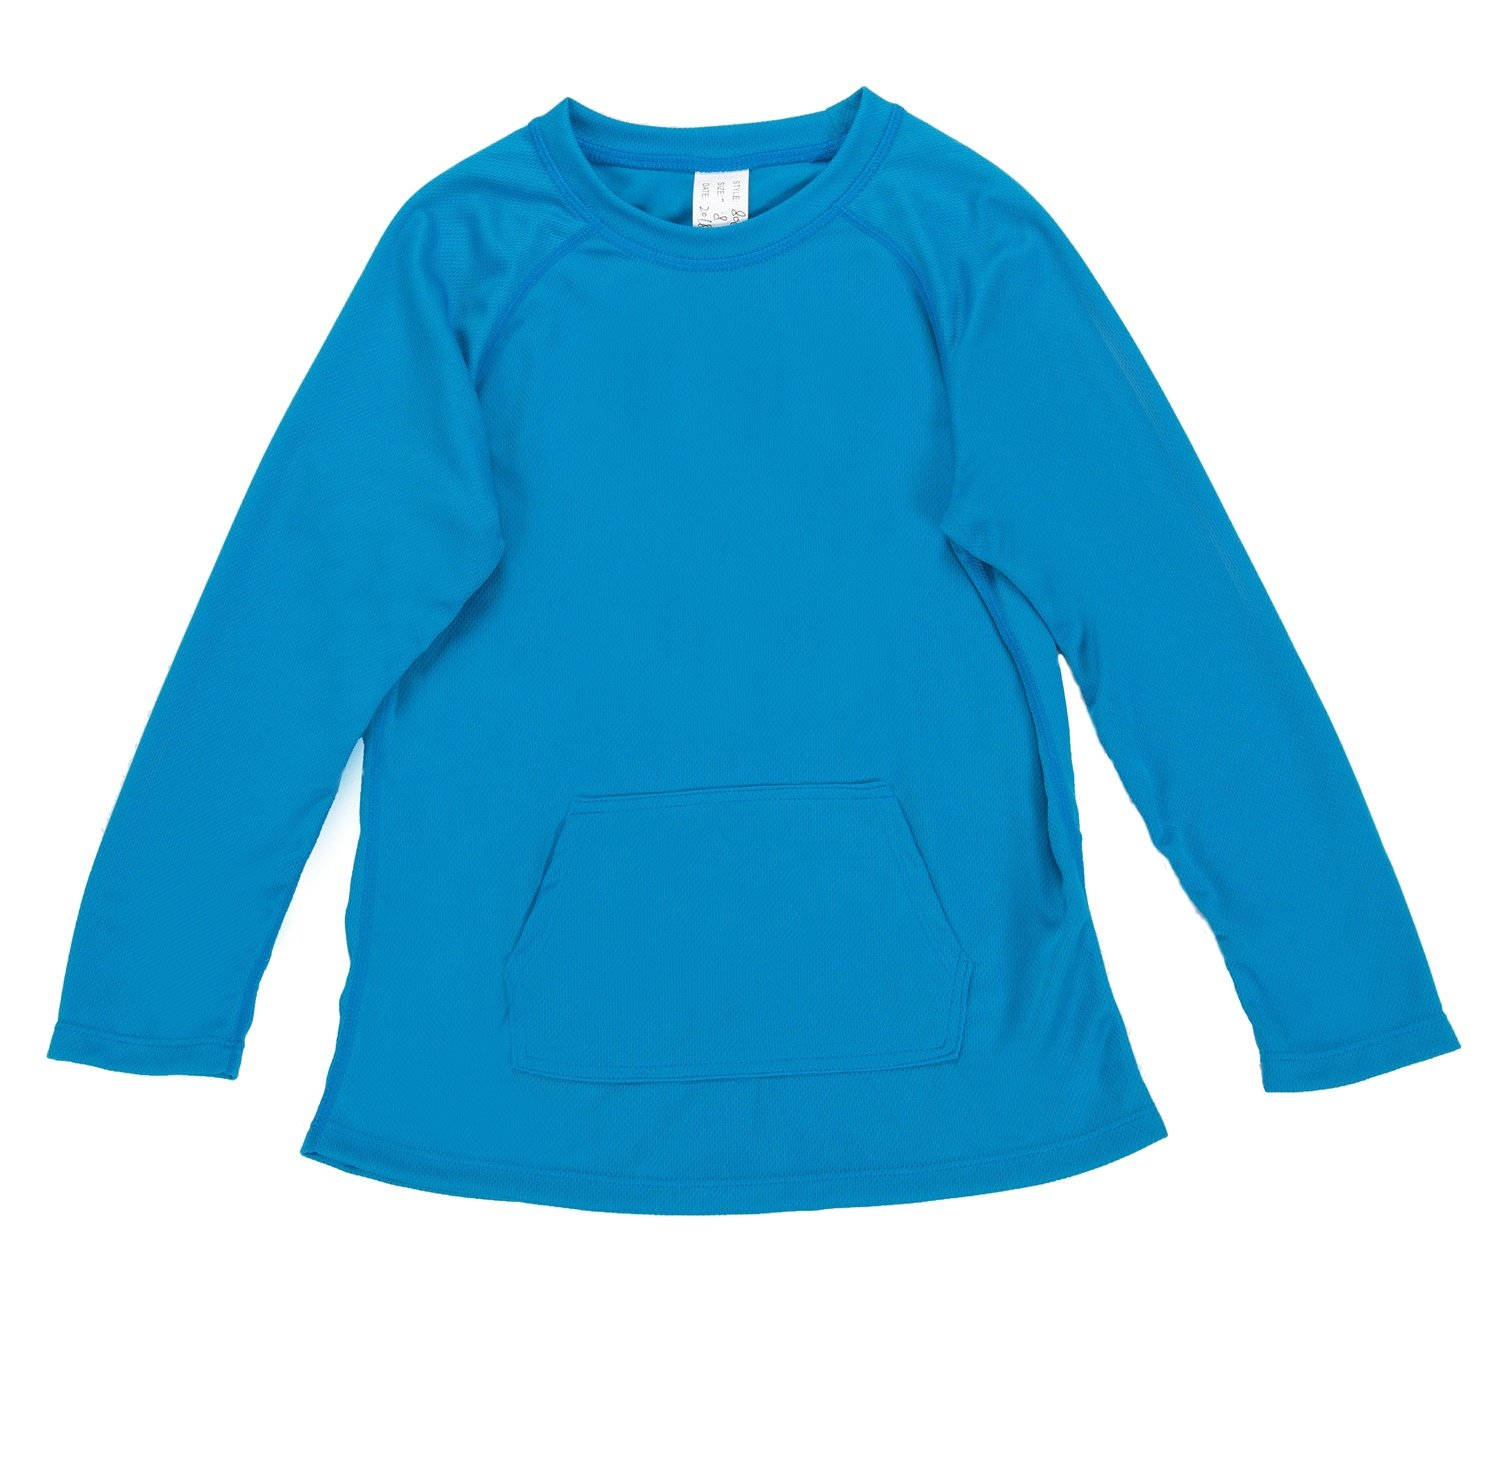 ATTRACO Girls Boys Raglan Rash Guard Swimsuit UV Protective Shirts Tops UPF 50+